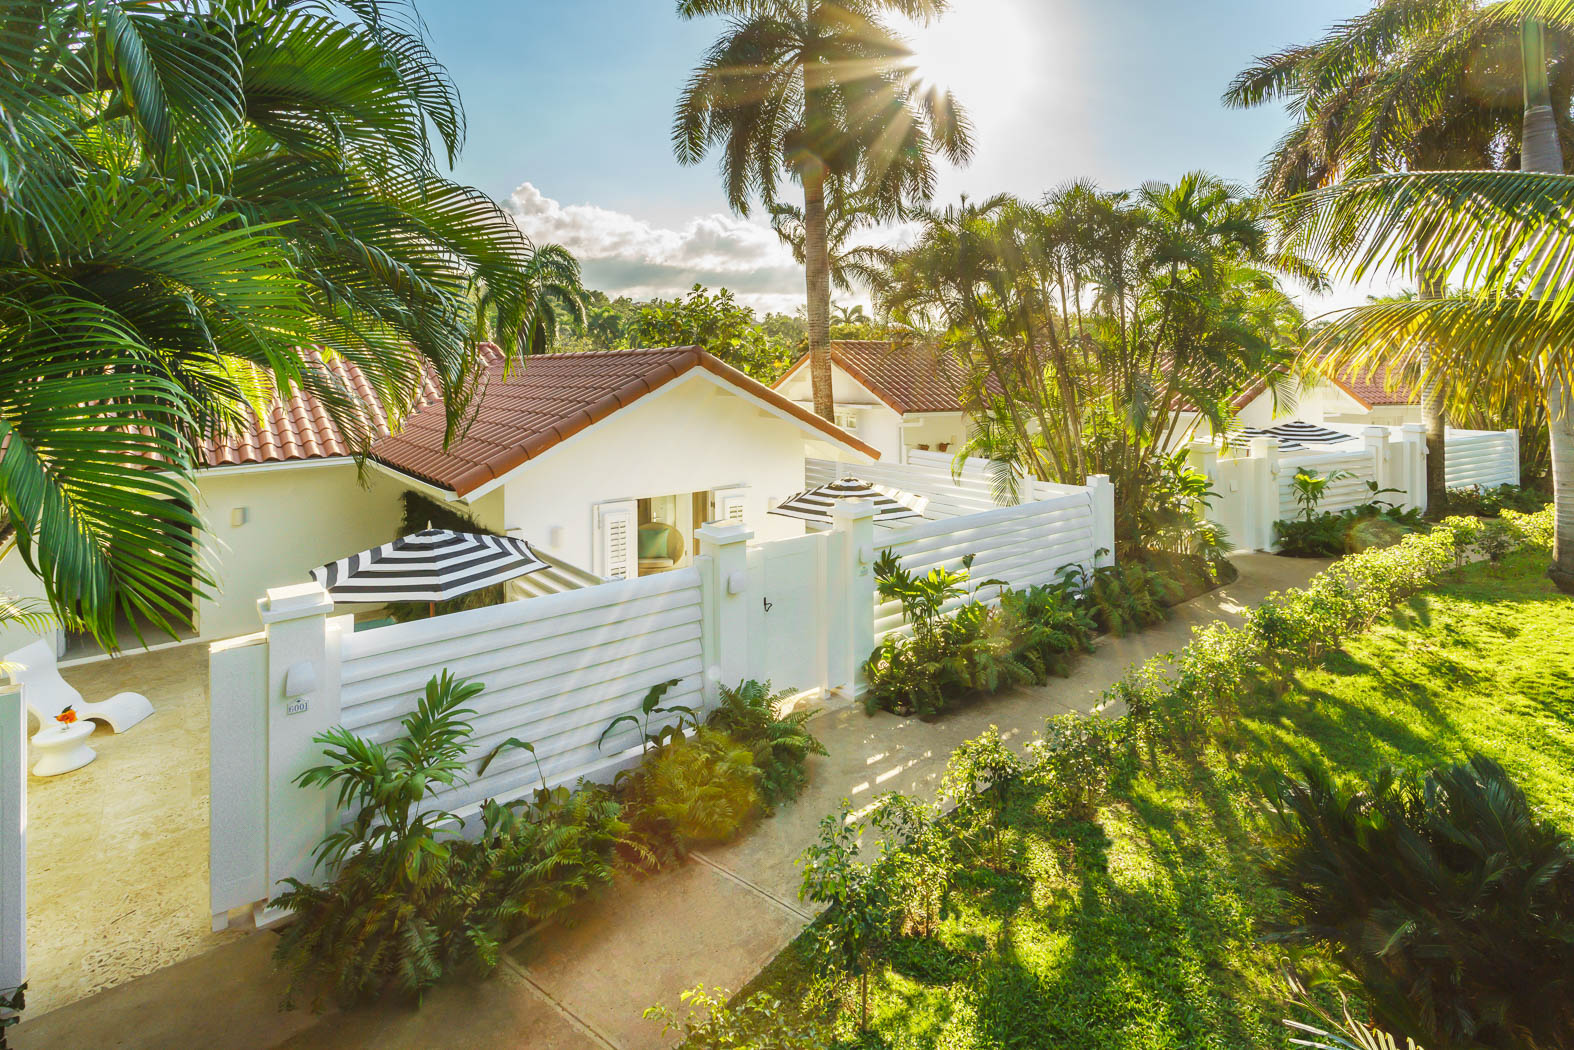 Oasis Spa Villas Overview at Couples Tower Isle